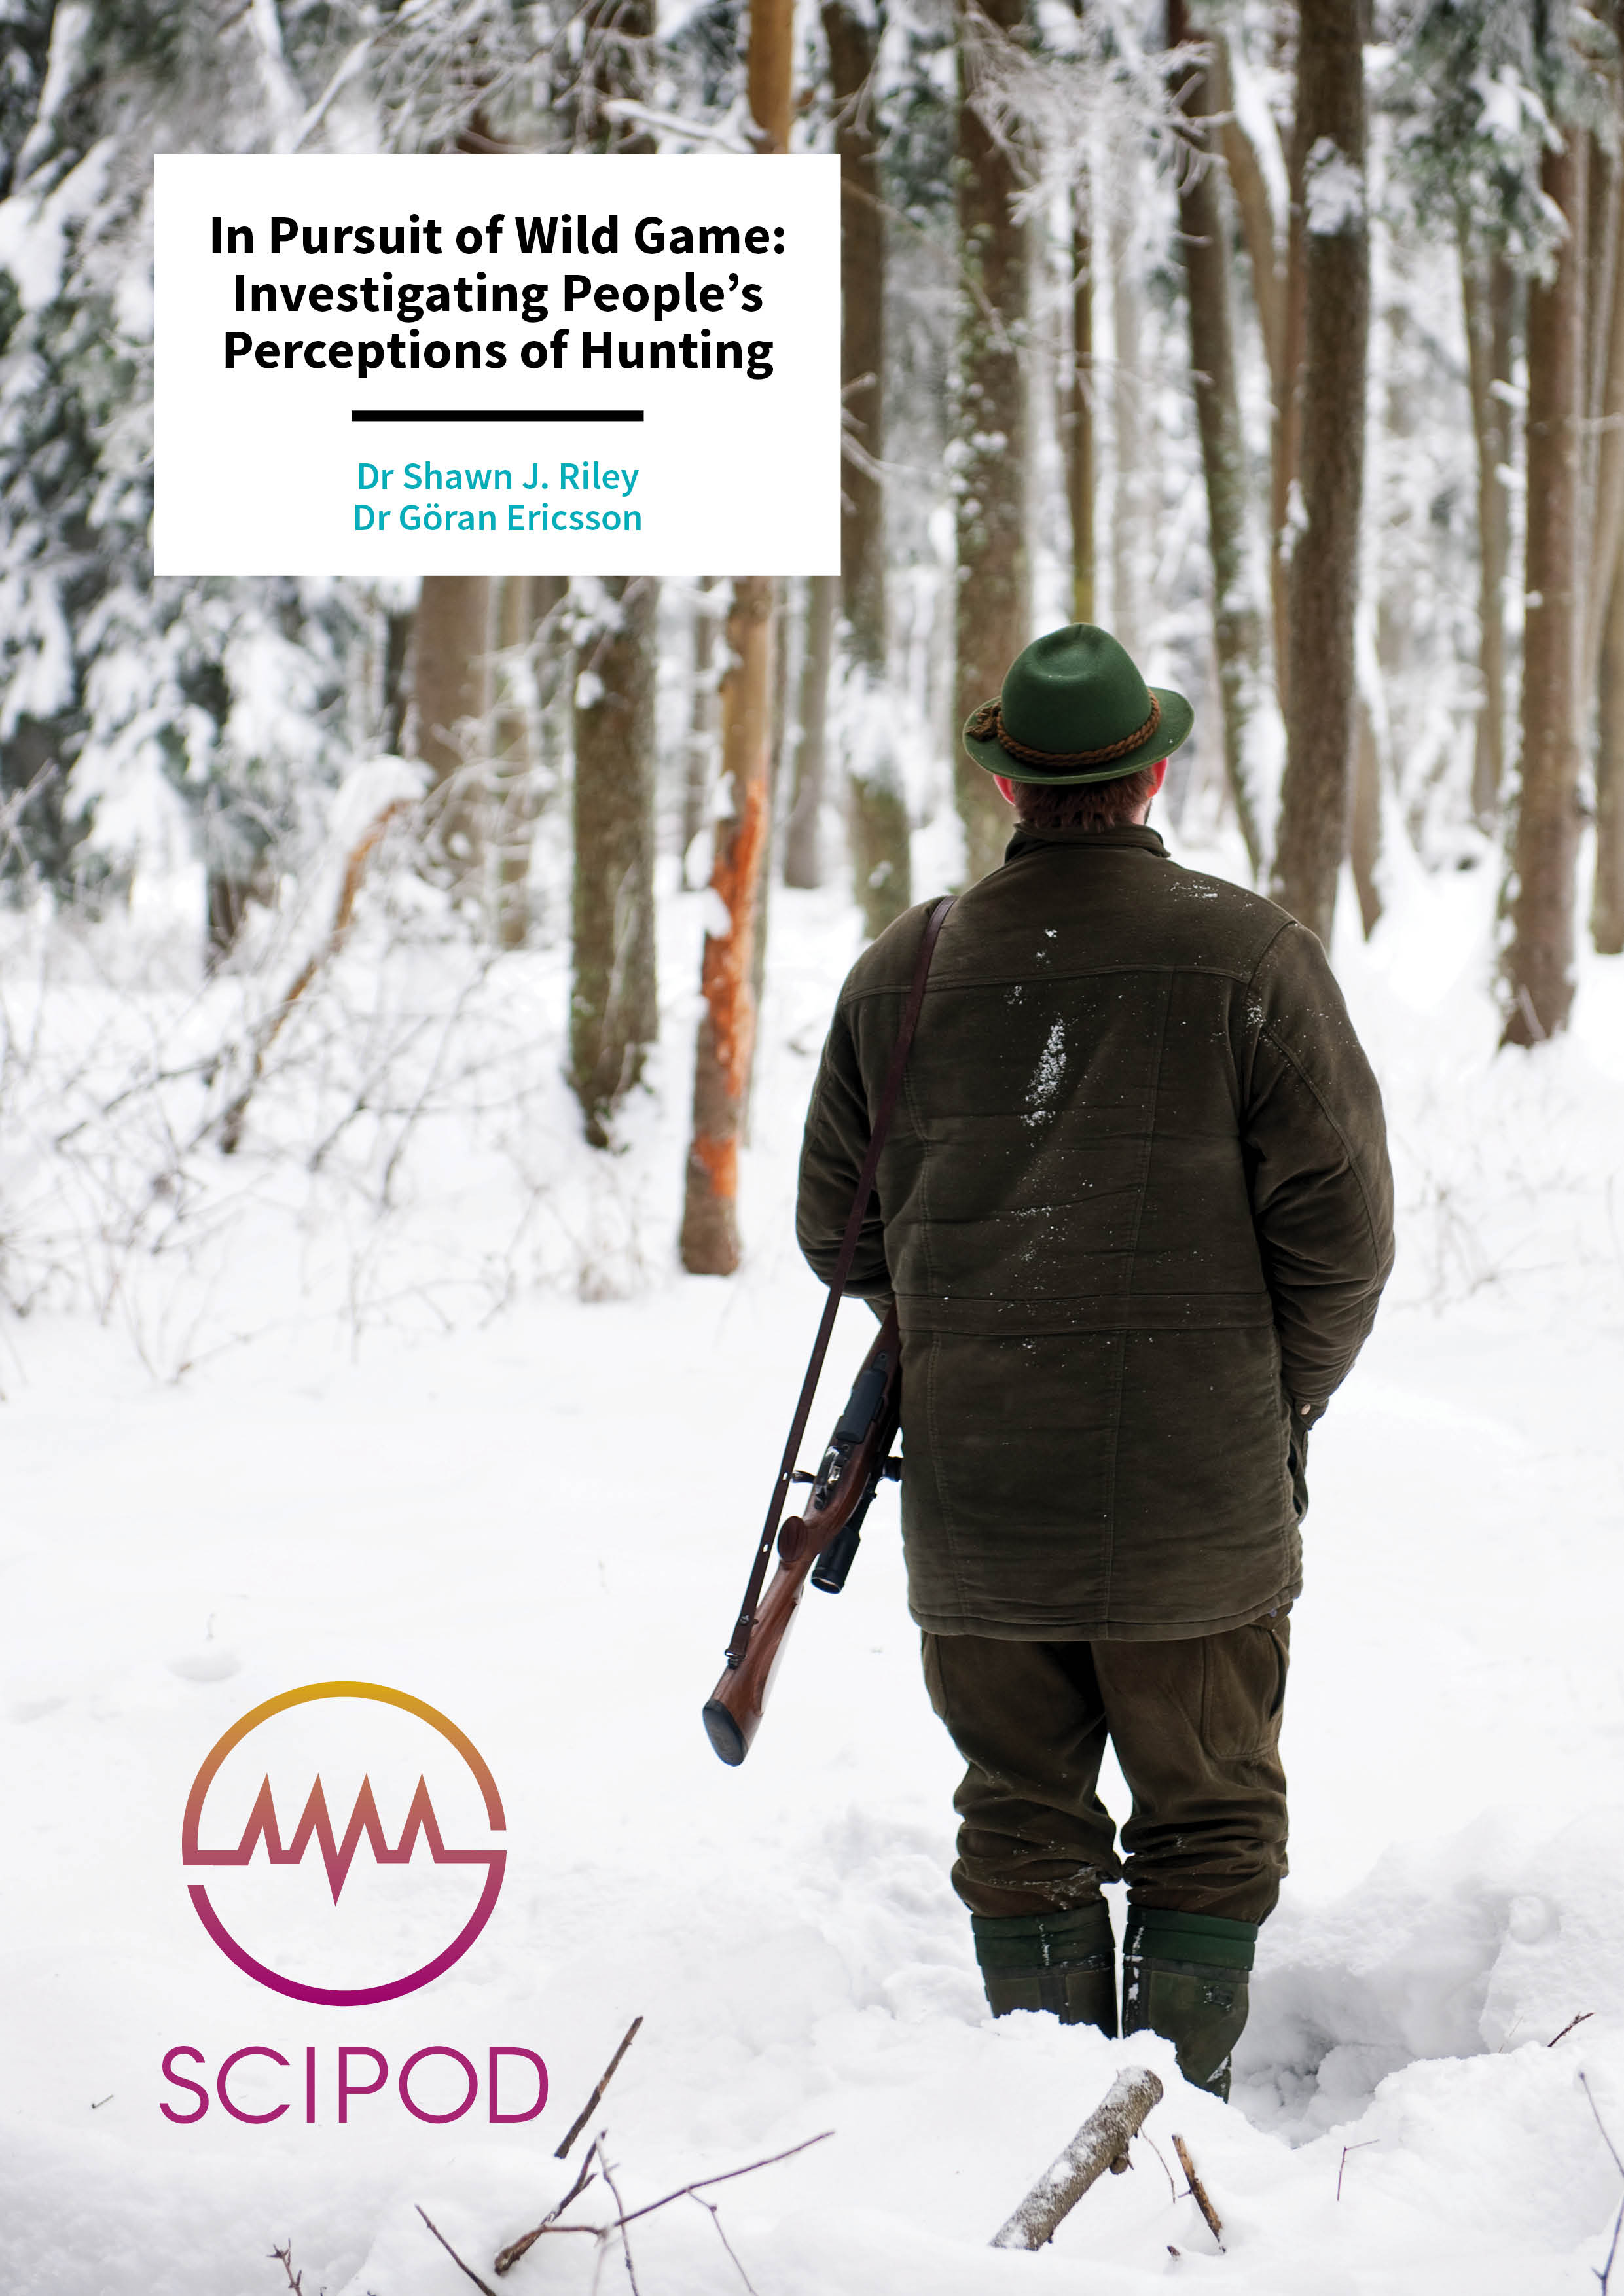 In Pursuit of Wild Game Investigating People's Perceptions of Hunting – Drs Shawn J. Riley and Göran Ericsson